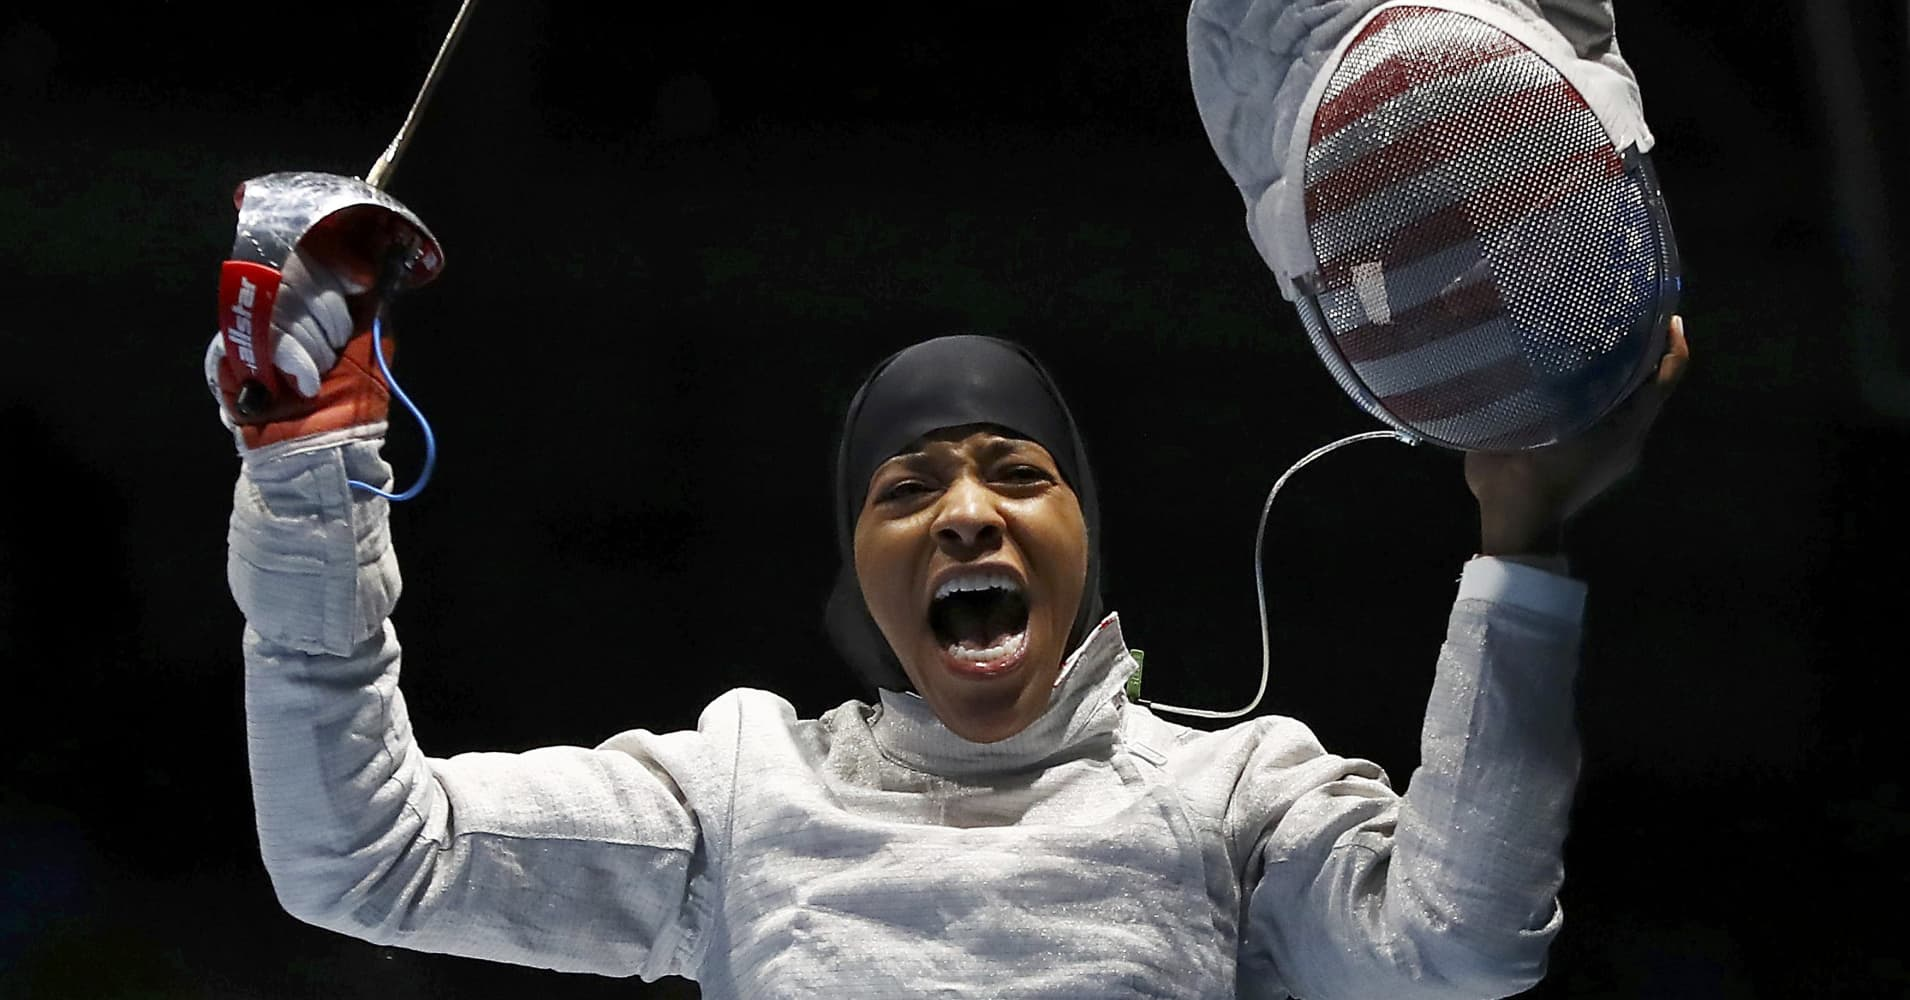 Muslim Fencer Represents Team Usa At The Olympics And Beyond